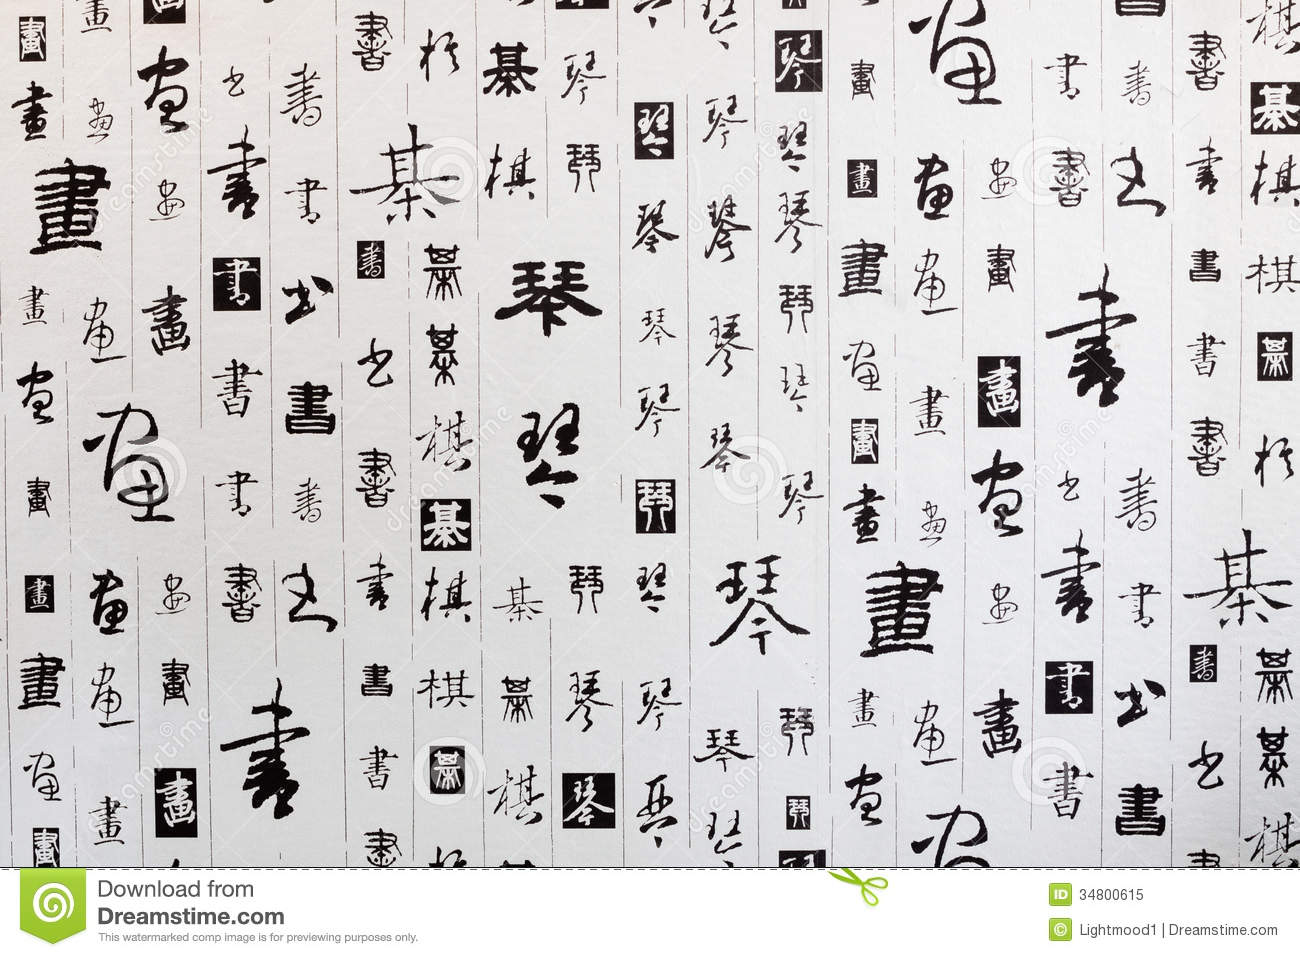 Chinese Letters Wallpaper Wallpapersafari